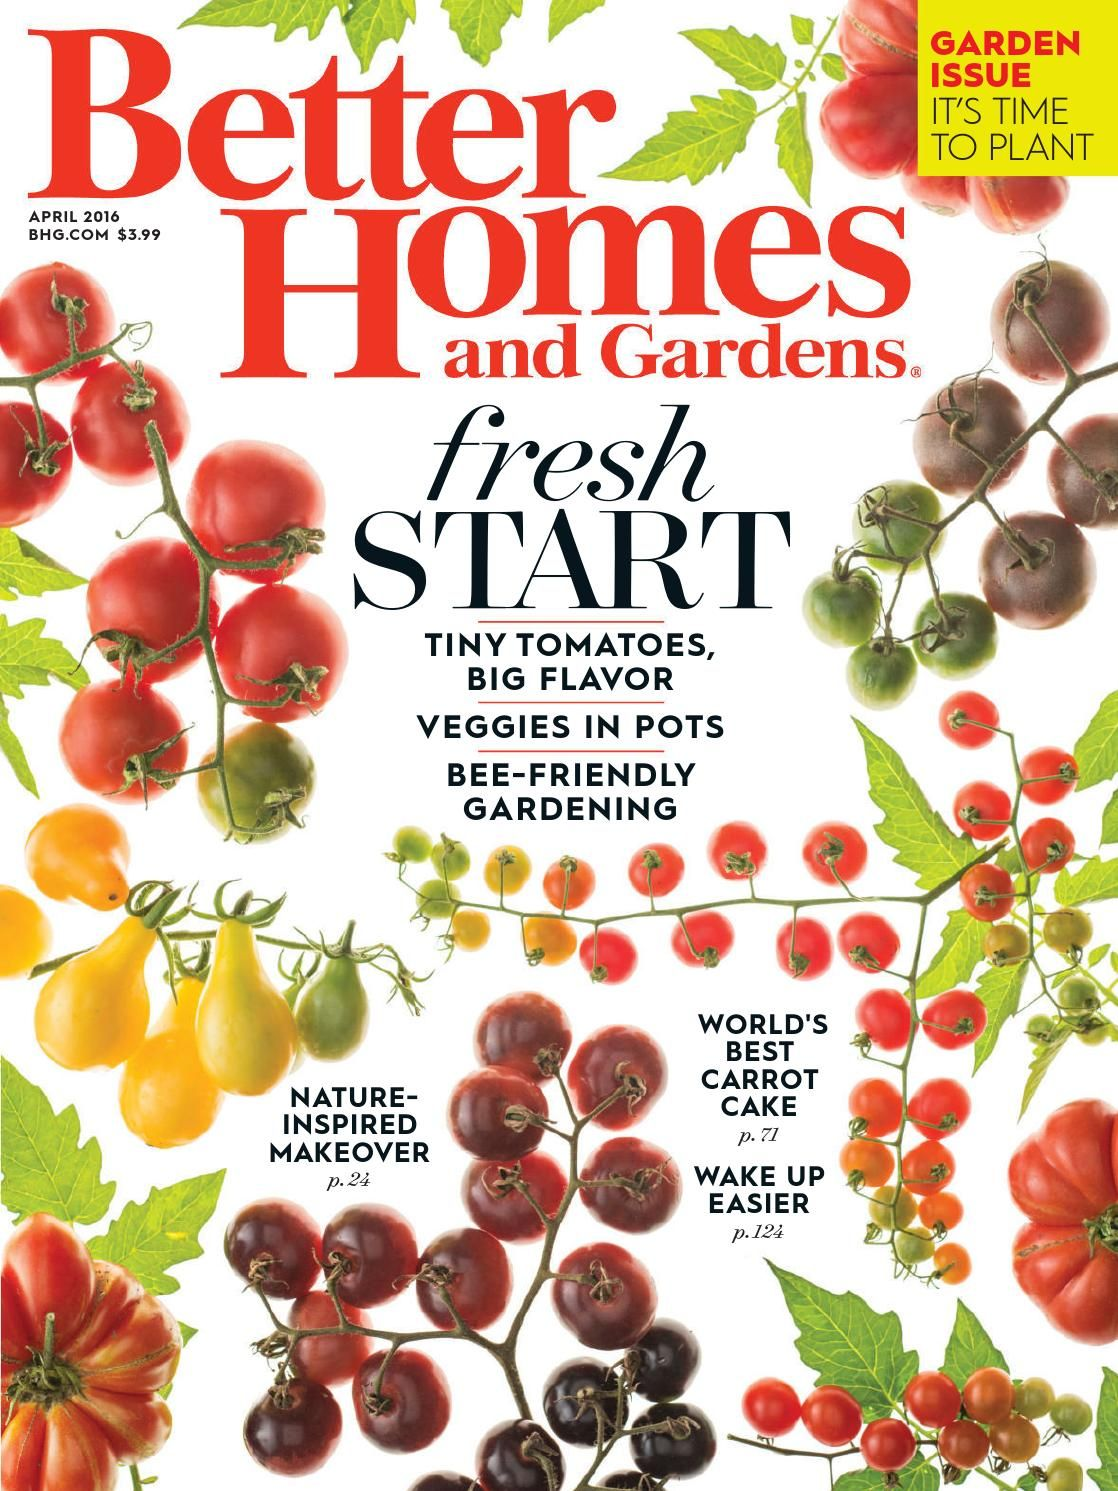 7ab684b3fc096c032c32aac5f6607840 - Better Homes And Gardens Sweepstakes 2016